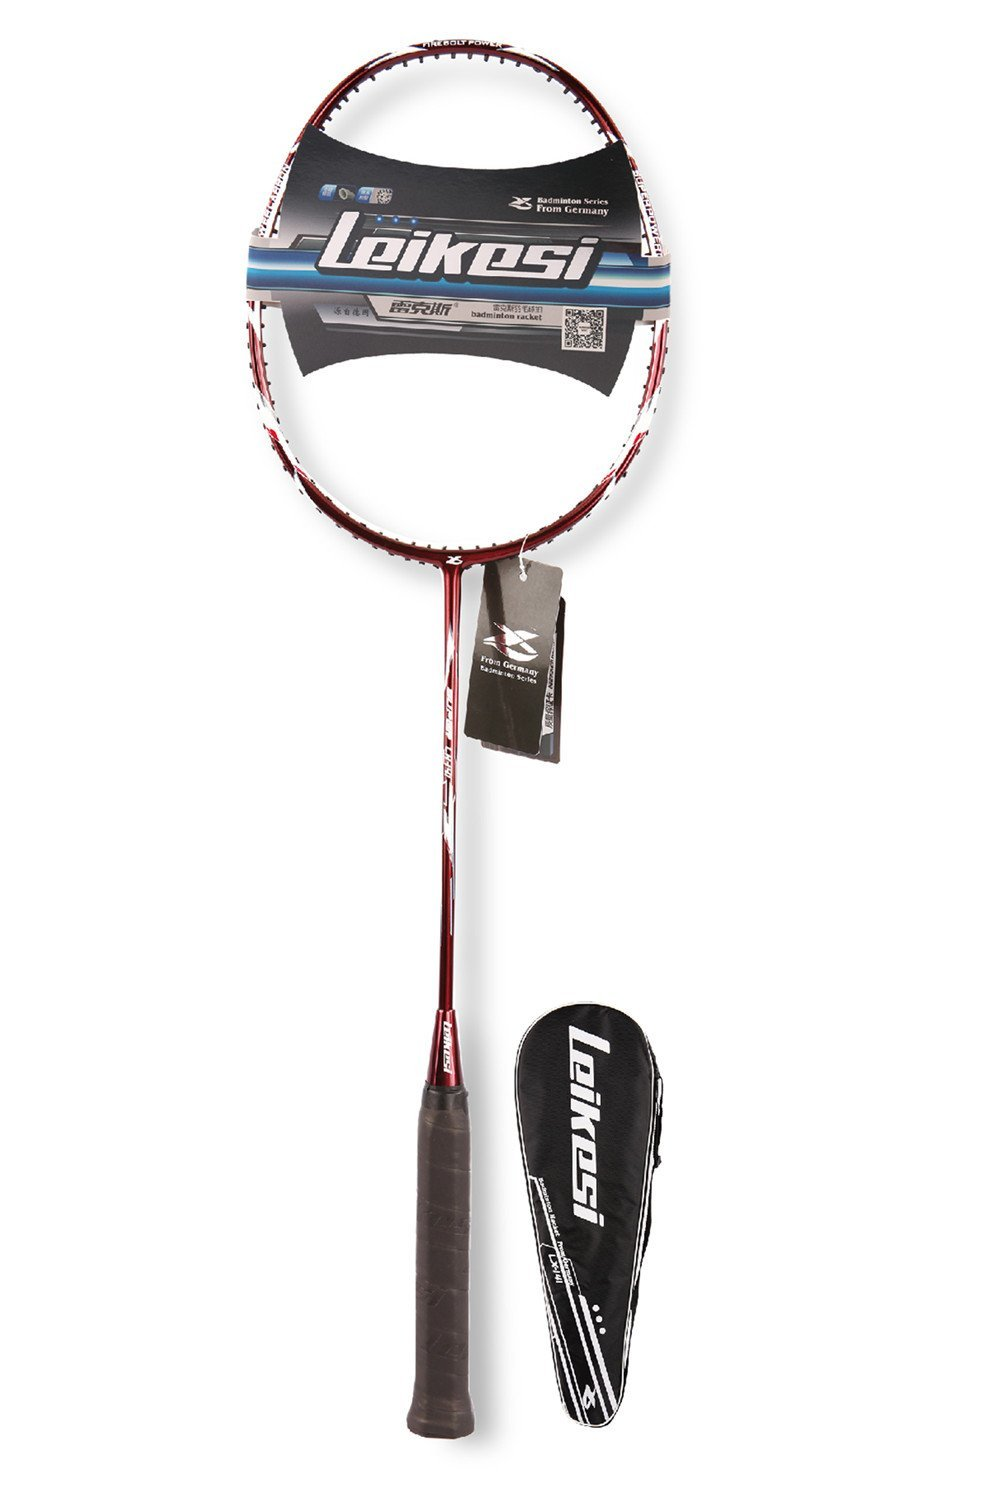 LeiKeSi Carbon Fiber Integrated Single Red Badminton Racket Without Line